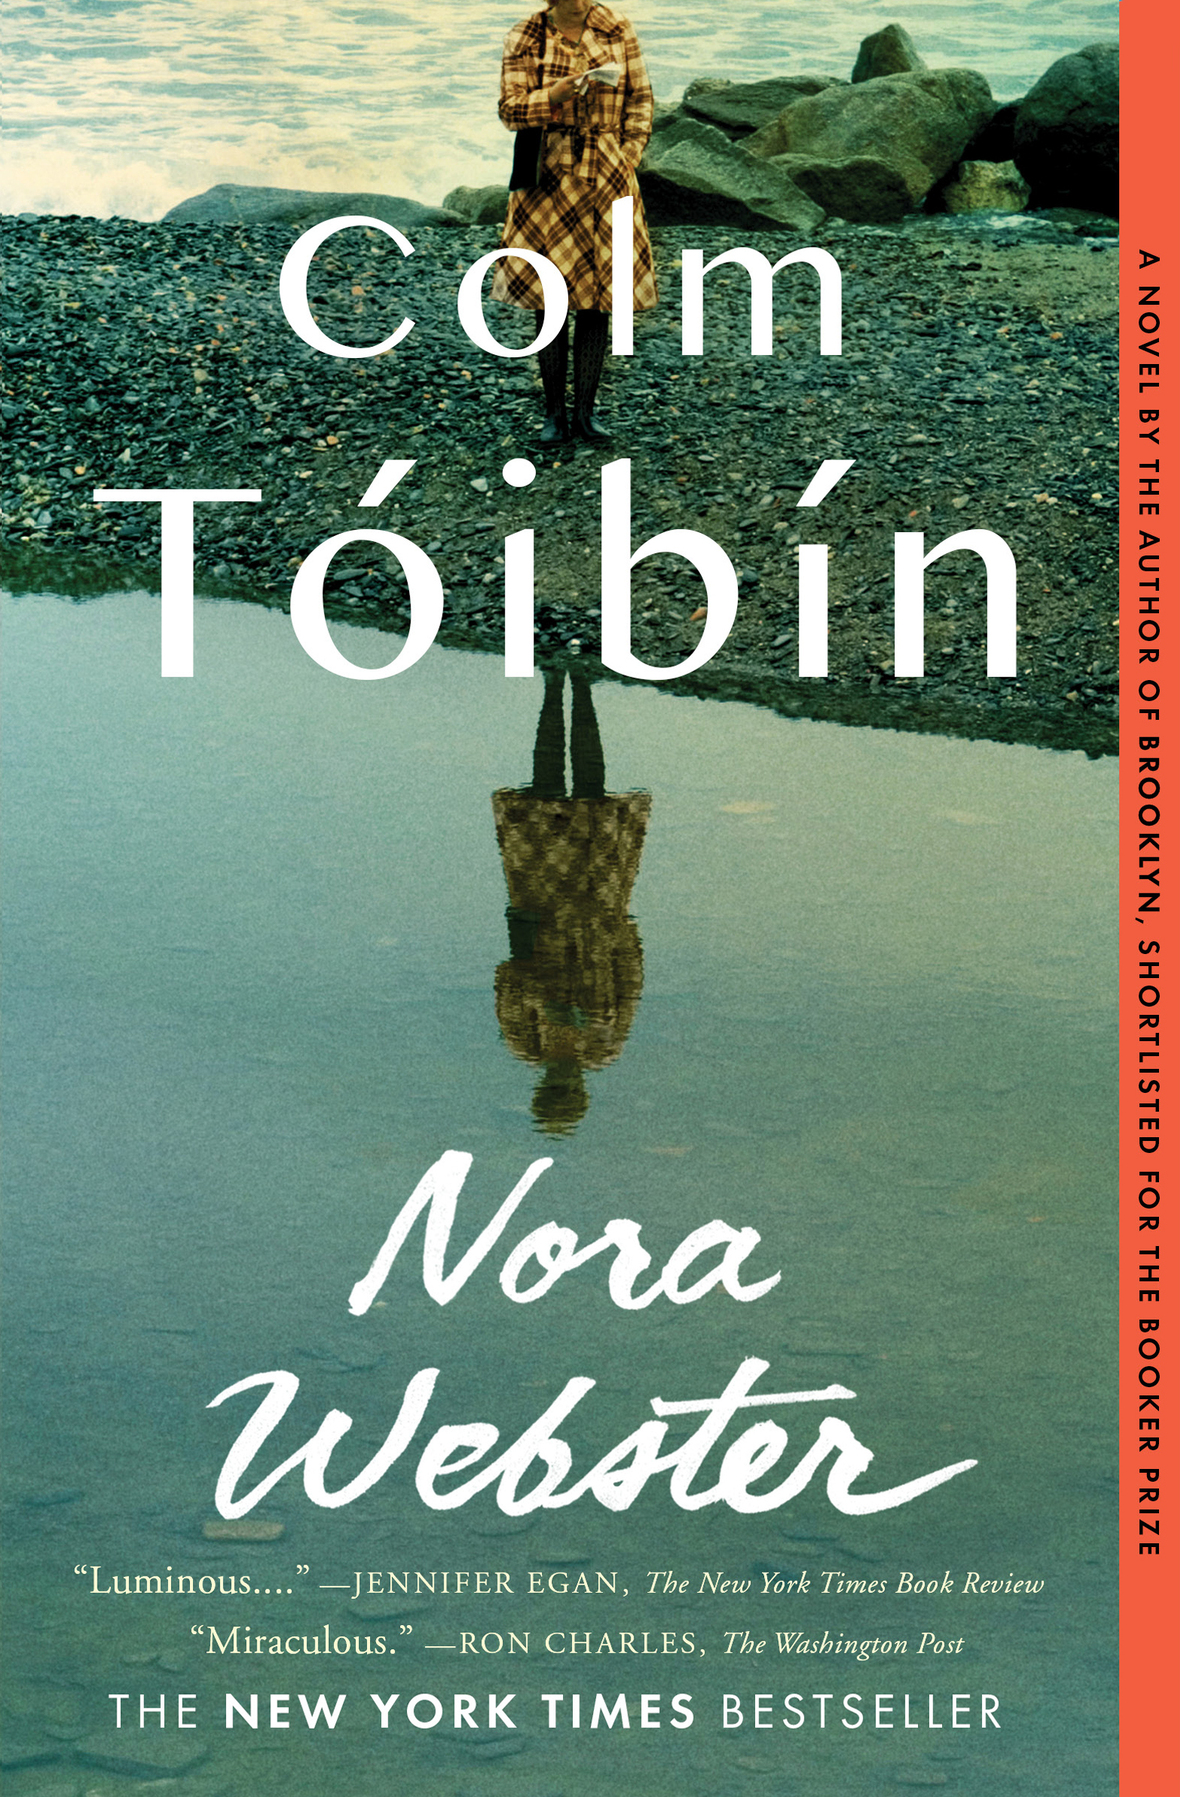 NoraWebster.paperback.cover